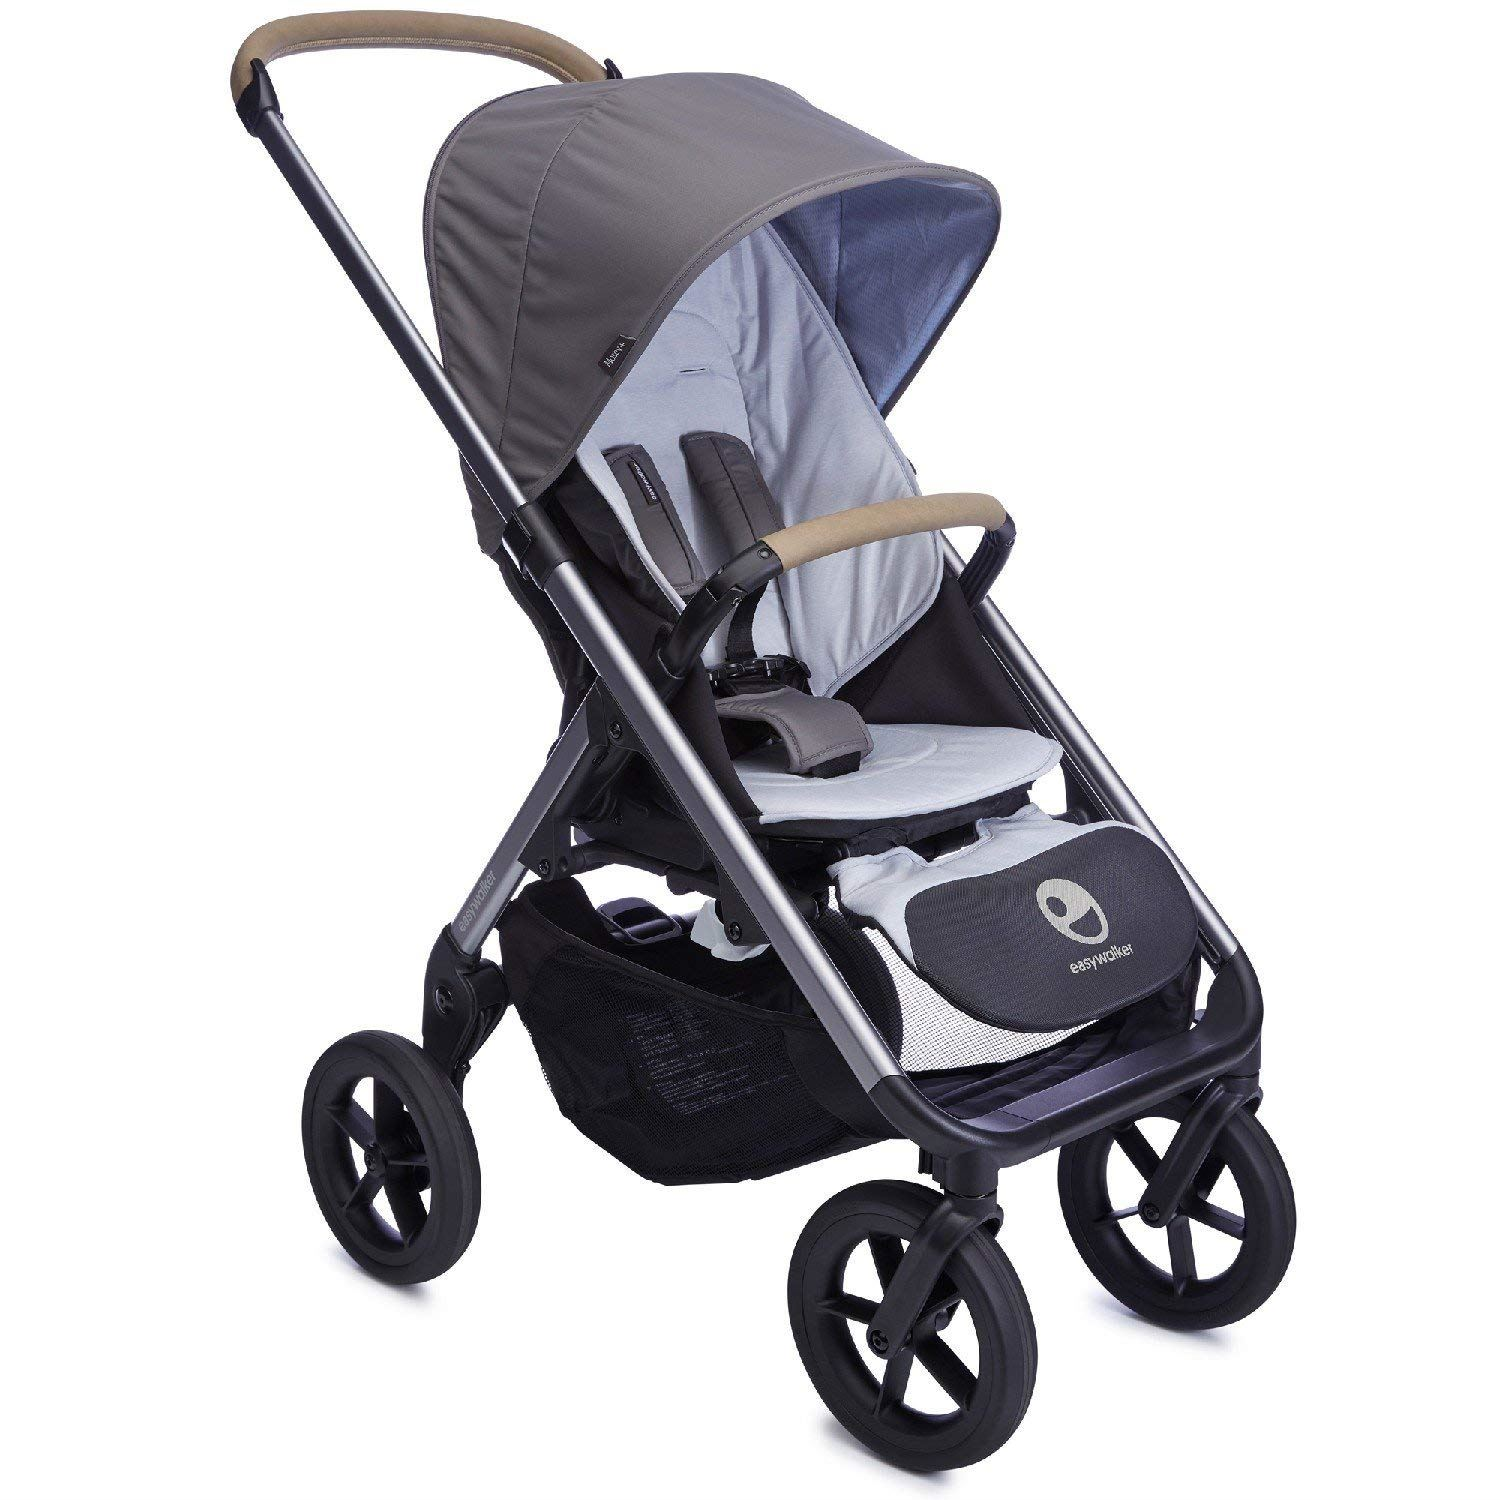 Easywalker MOSEY RAINCOVER CARRYCOT Pushchair Pram Buggy Accessory BN